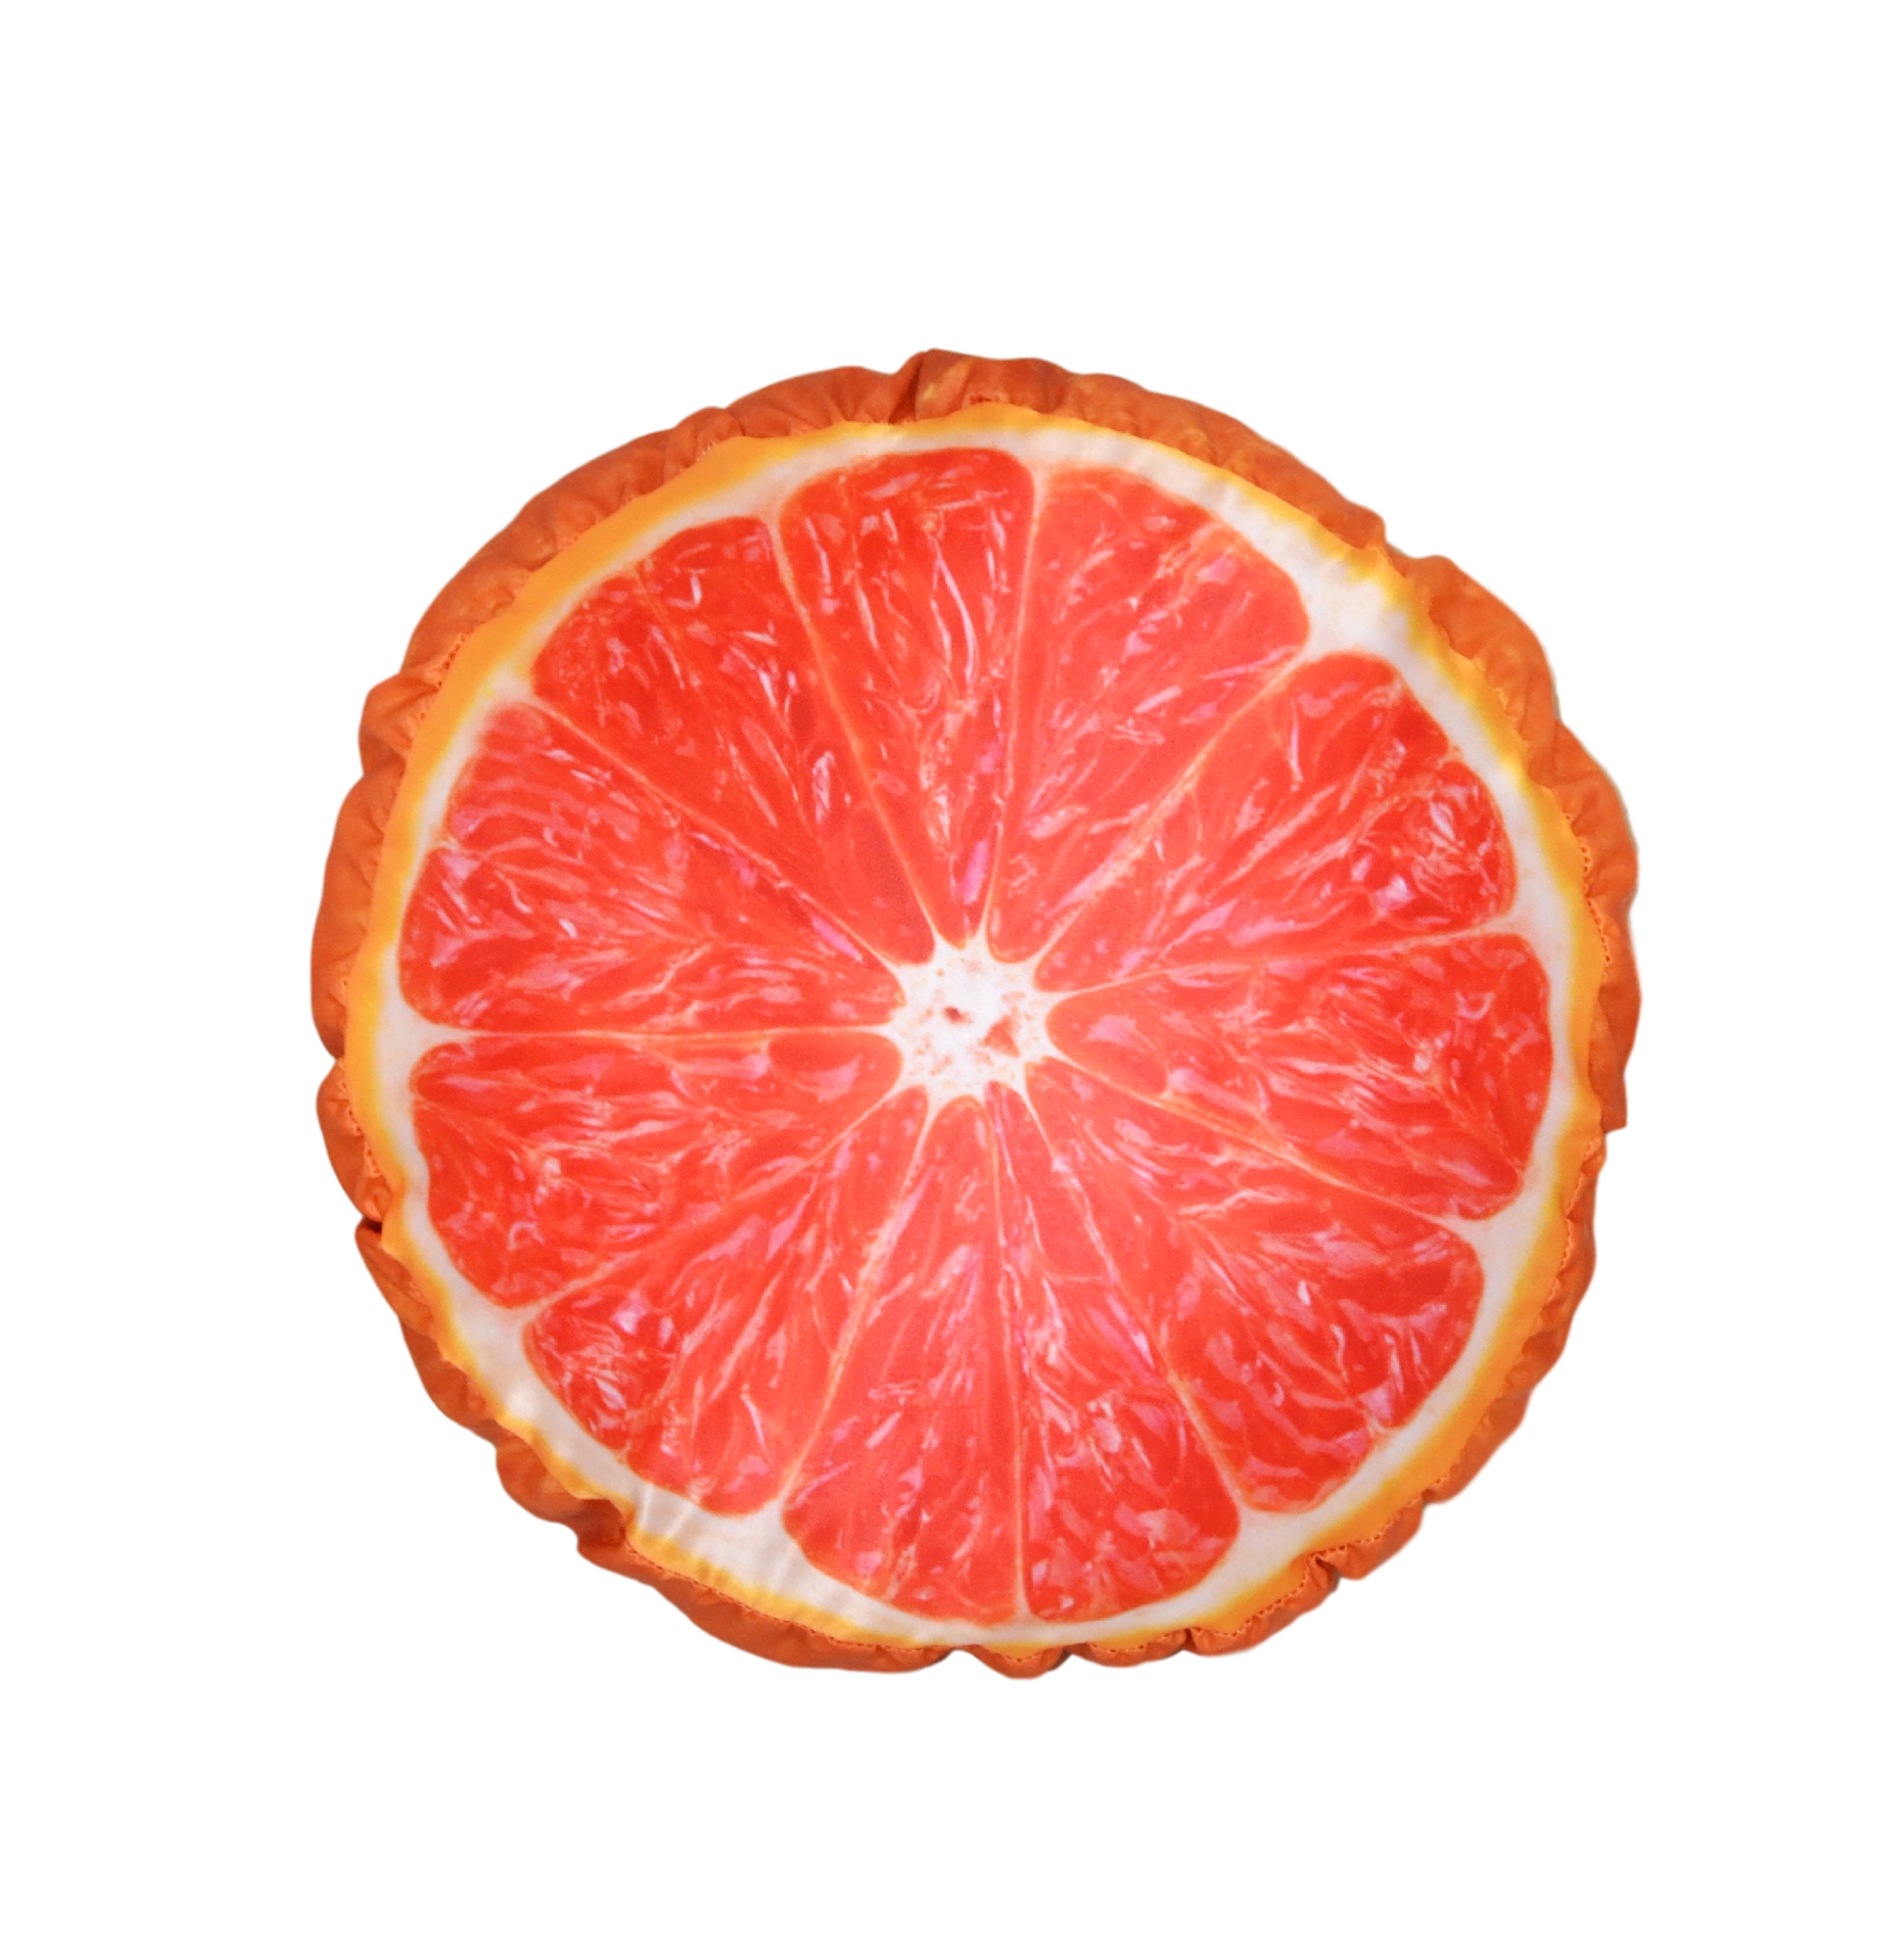 Grapefruit Hd Png Transparent Grapefruit Hd Png Images